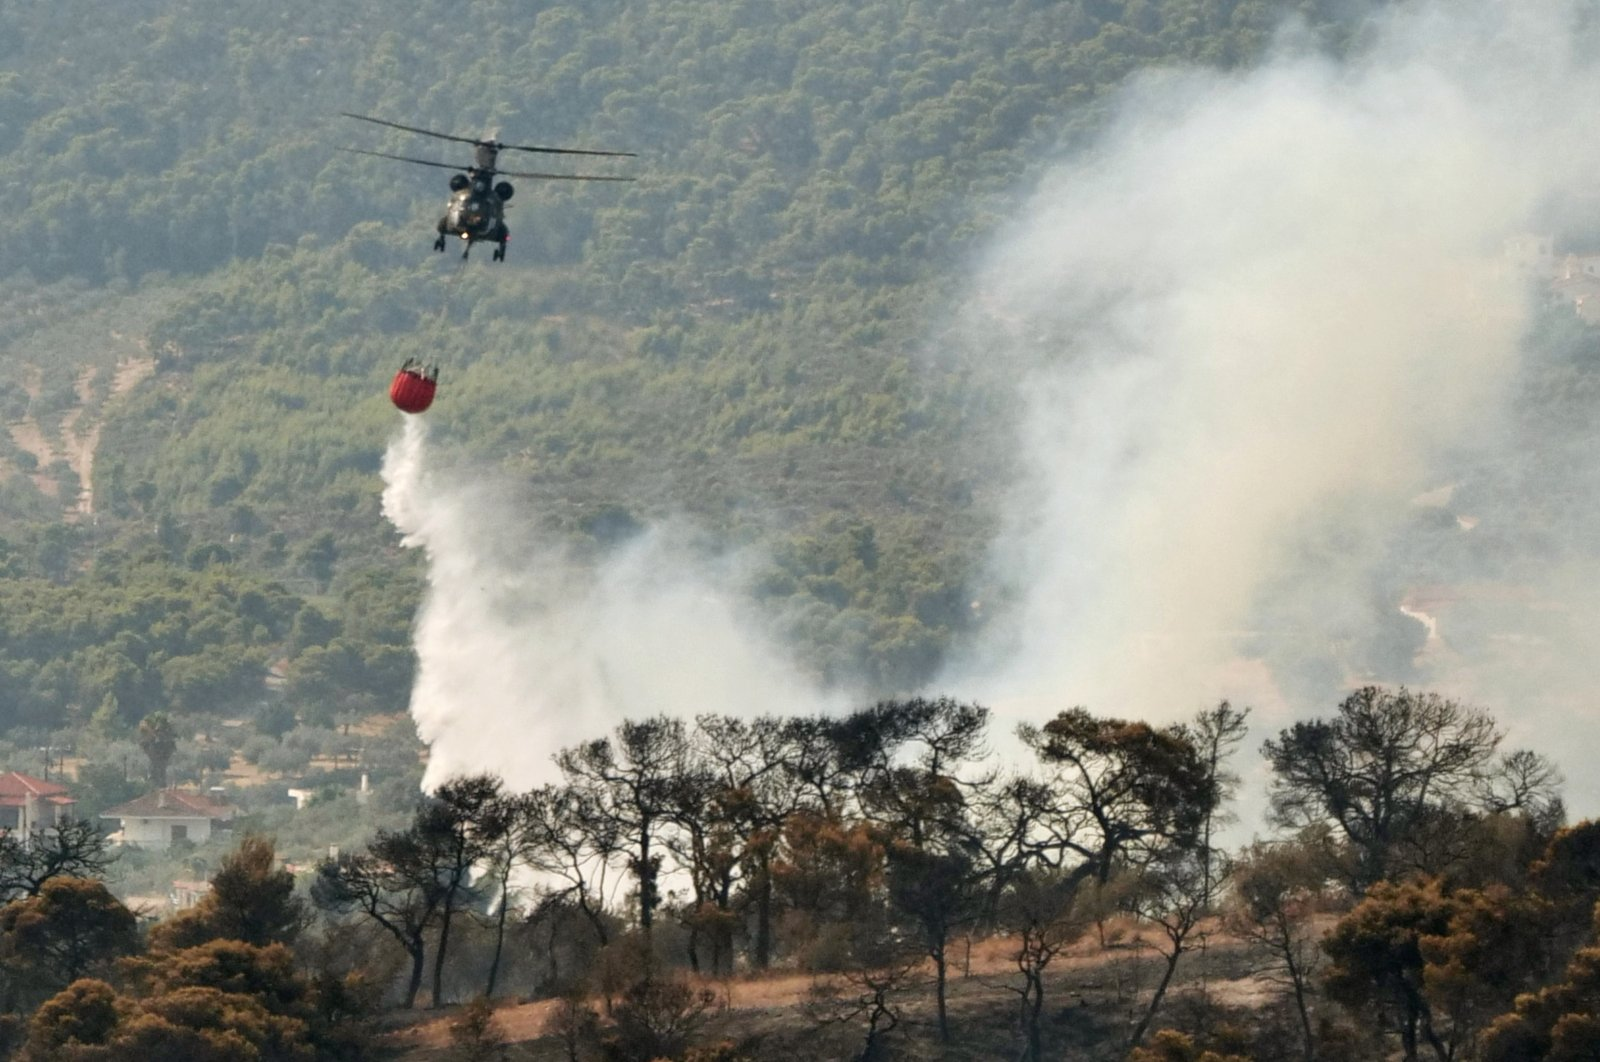 A firefighting helicopter makes a water drop as a wildfire burns near the village of Galataki, Greece, July 23, 2020. (Reuters Photo)